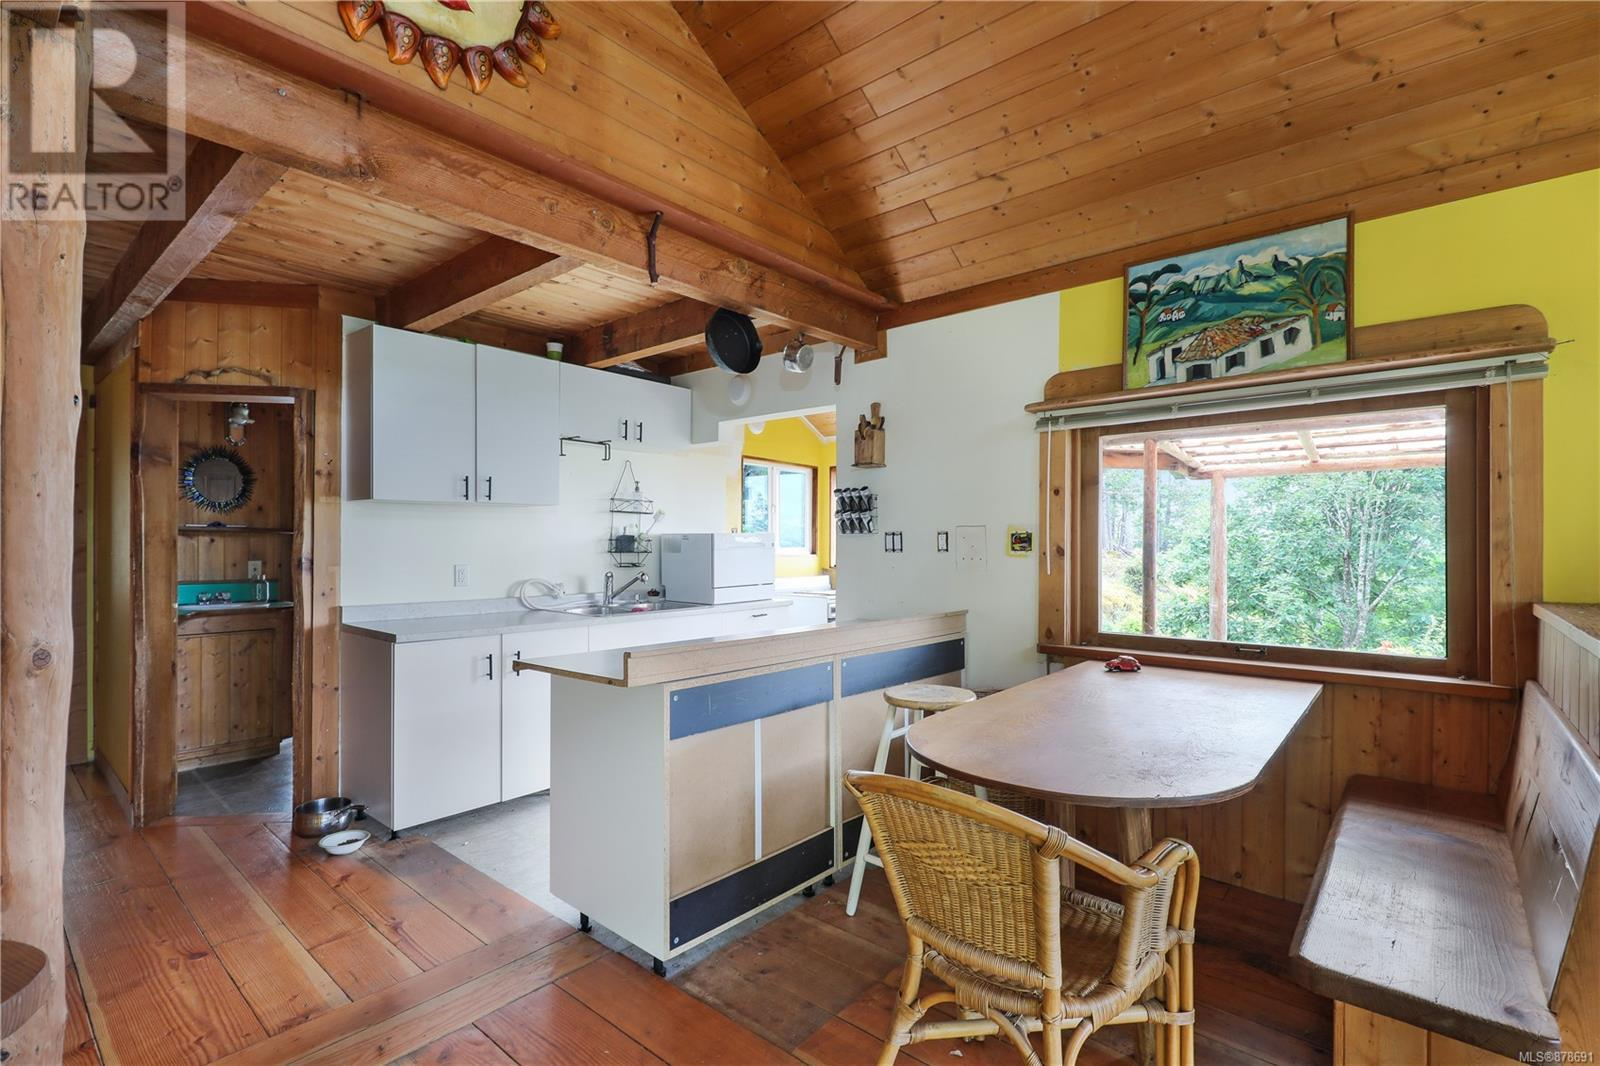 MLS® #878691 - Cortes Island House For sale Image #47